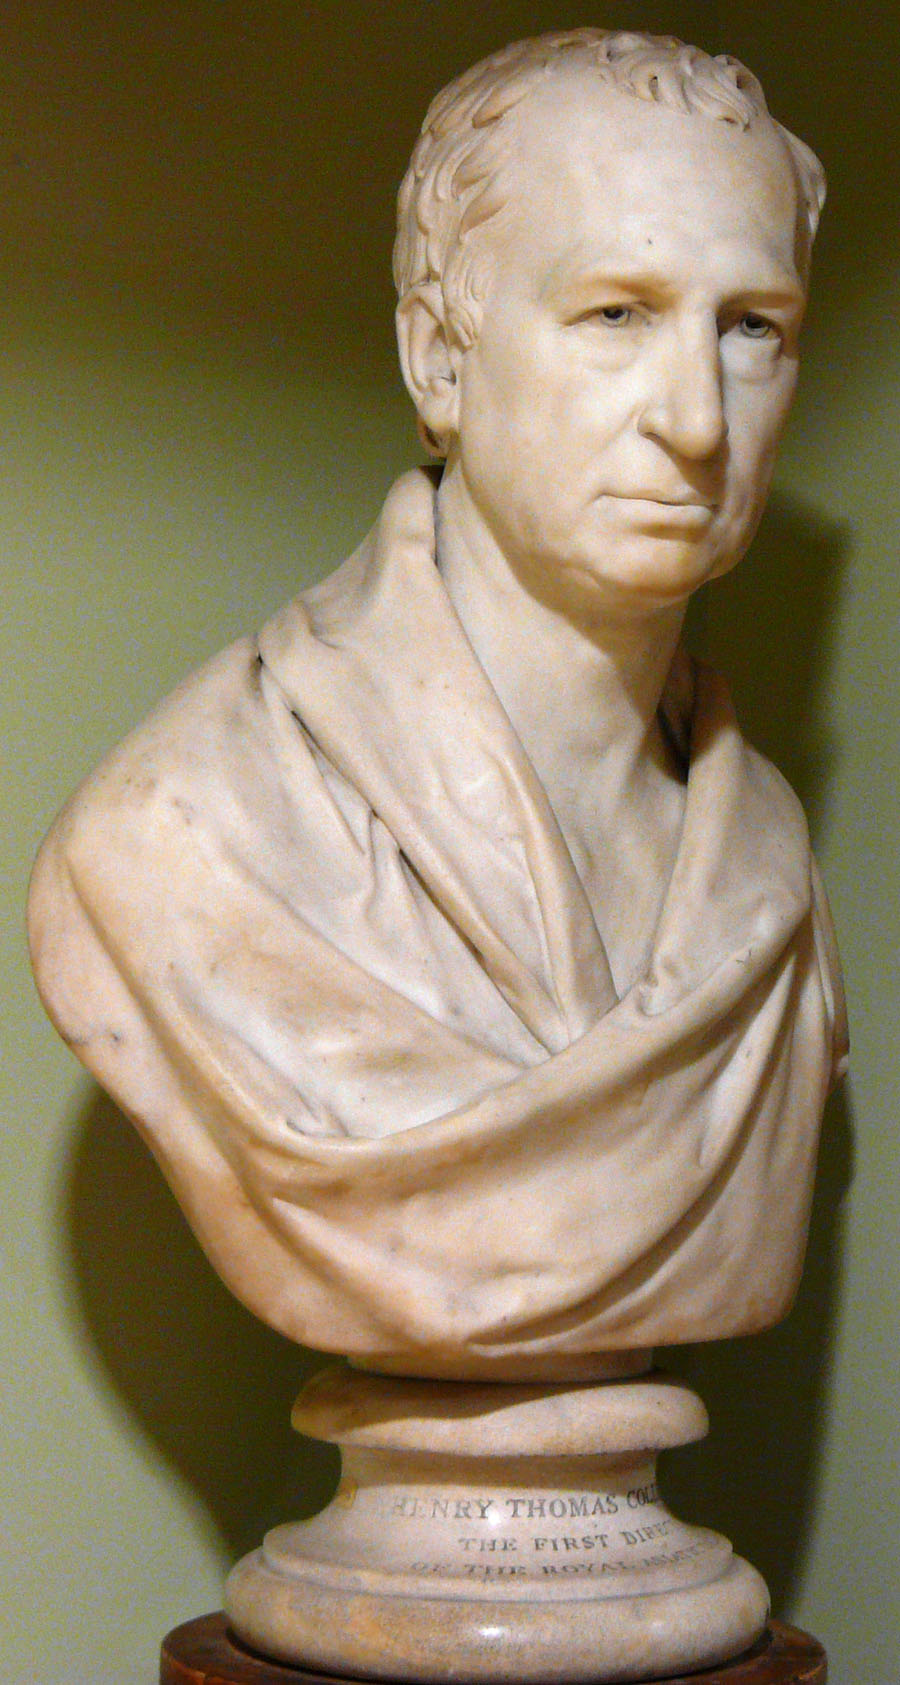 Marble Bust of Henry Thomas Colebrooke by Henry Weekes. Commissioned by RAS, 1837